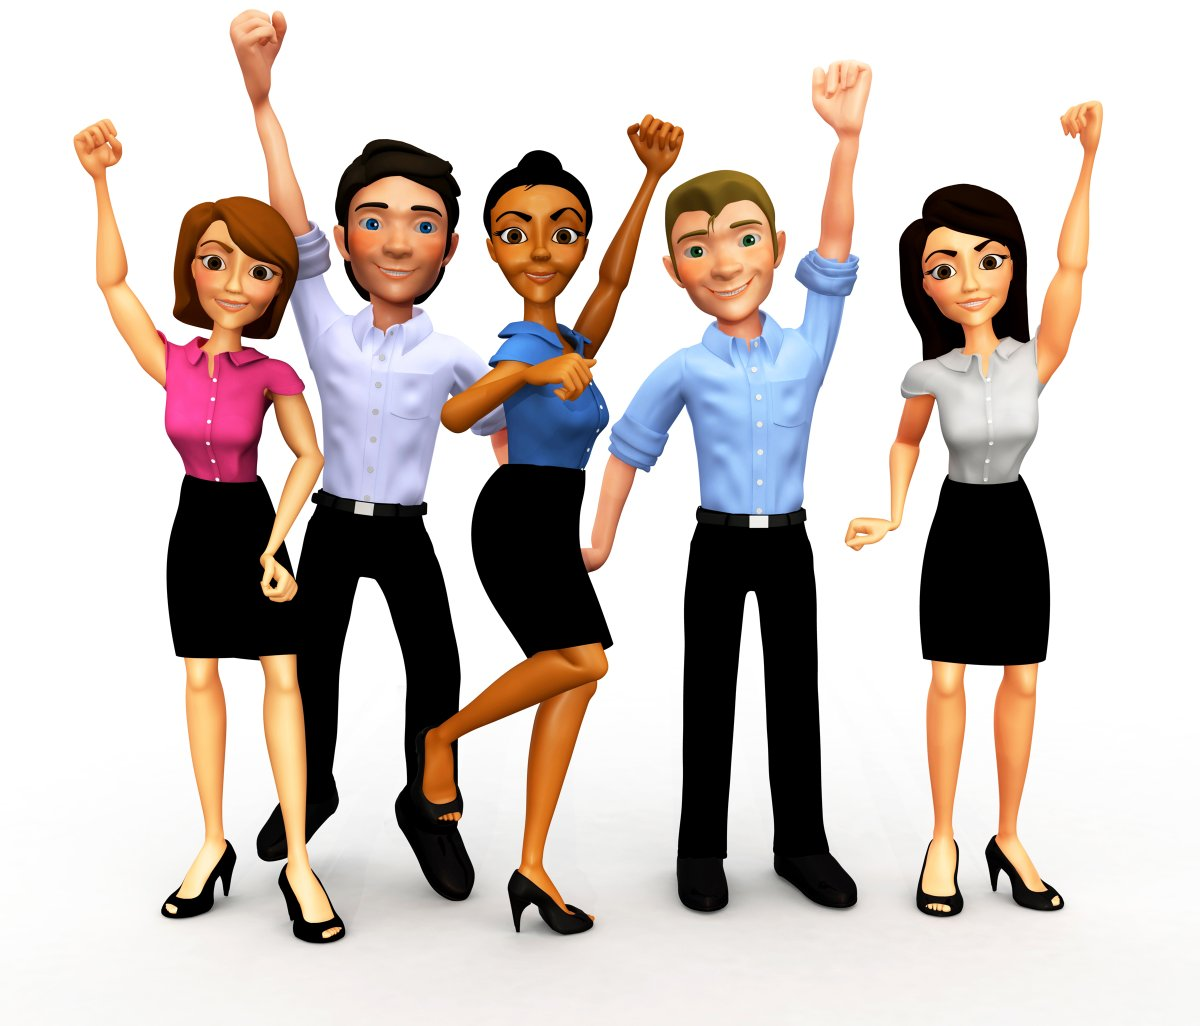 Meet the #elevenseshour Team:  Monday - Dylan @AquaDesignGroup  Tuesday - Chrissie @Chris_Alloaloe  Wednesday - Sarah @SB_onlinecards   Thursday - Dee @harrogate_kim   #FriYAY - Nichola @crafty_bijoux   Plus lots of lovely regular Guest and Assistant Hosts! <br>http://pic.twitter.com/D9hDXjTva4